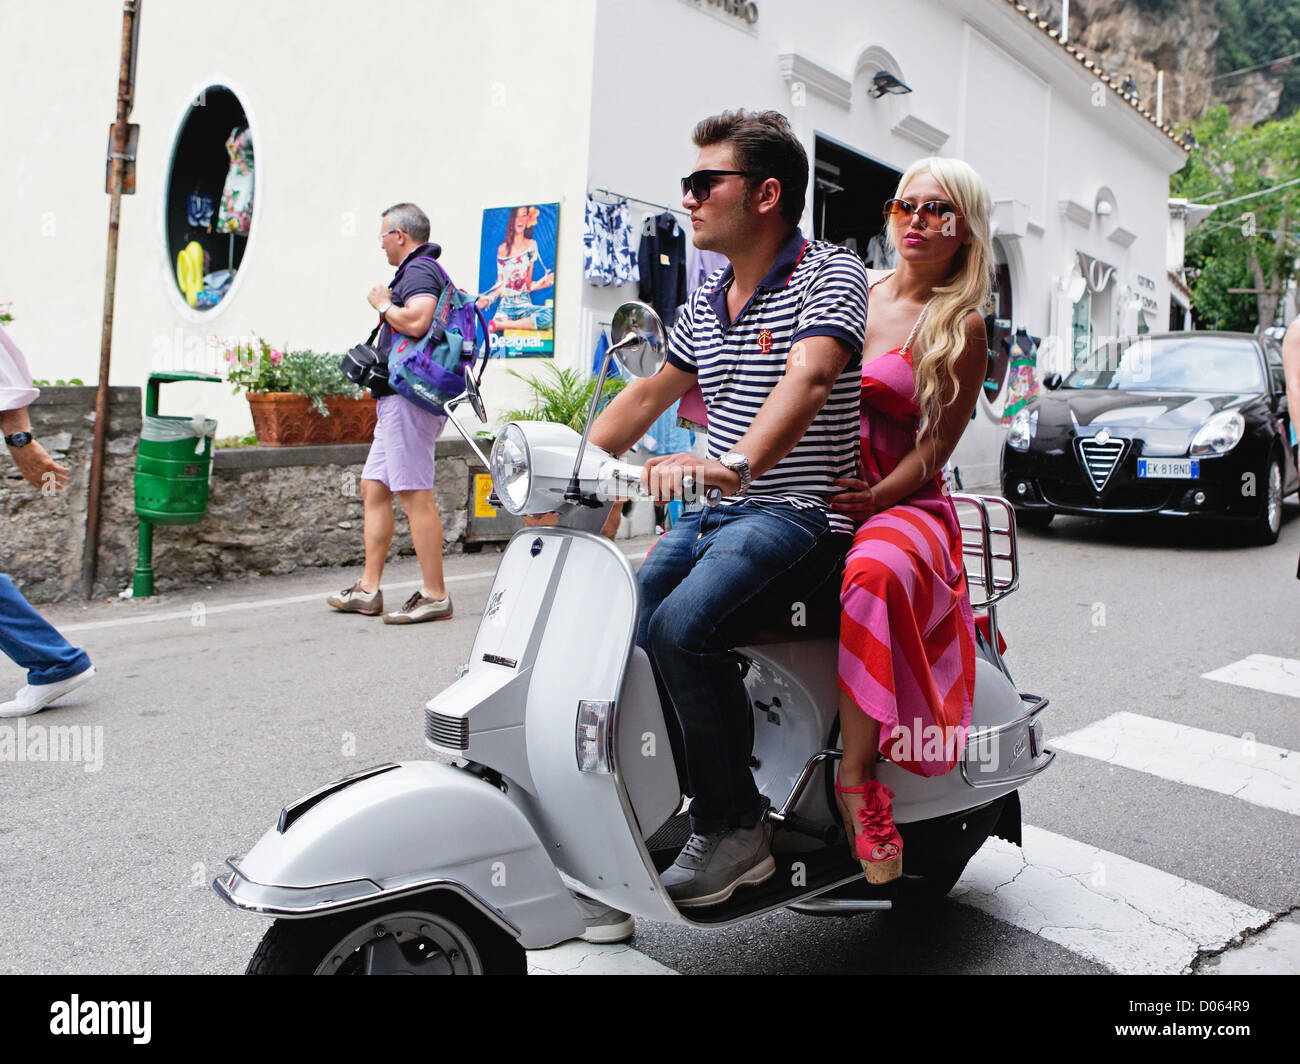 Young Couple Riding on a Scooter in Positano, Campania, Italy - Stock Image